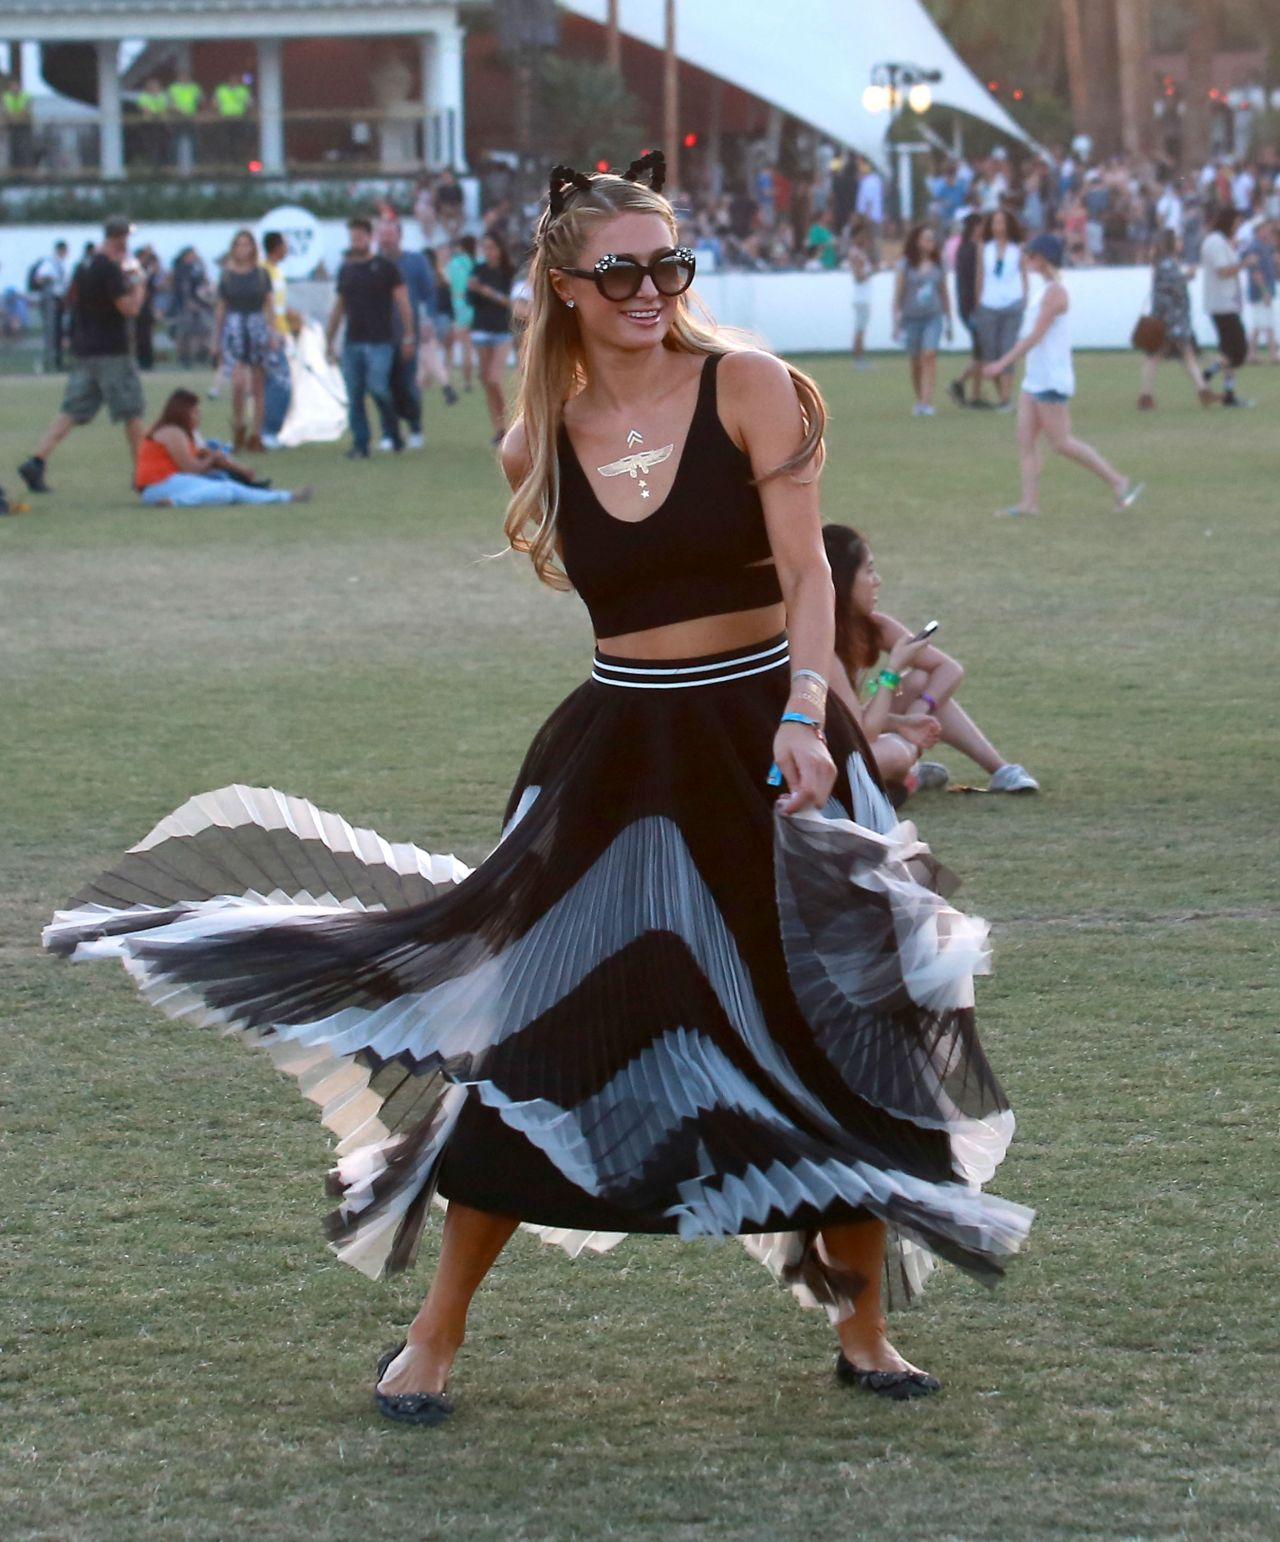 paris-hilton-coachella-music-arts-festival-2015_7